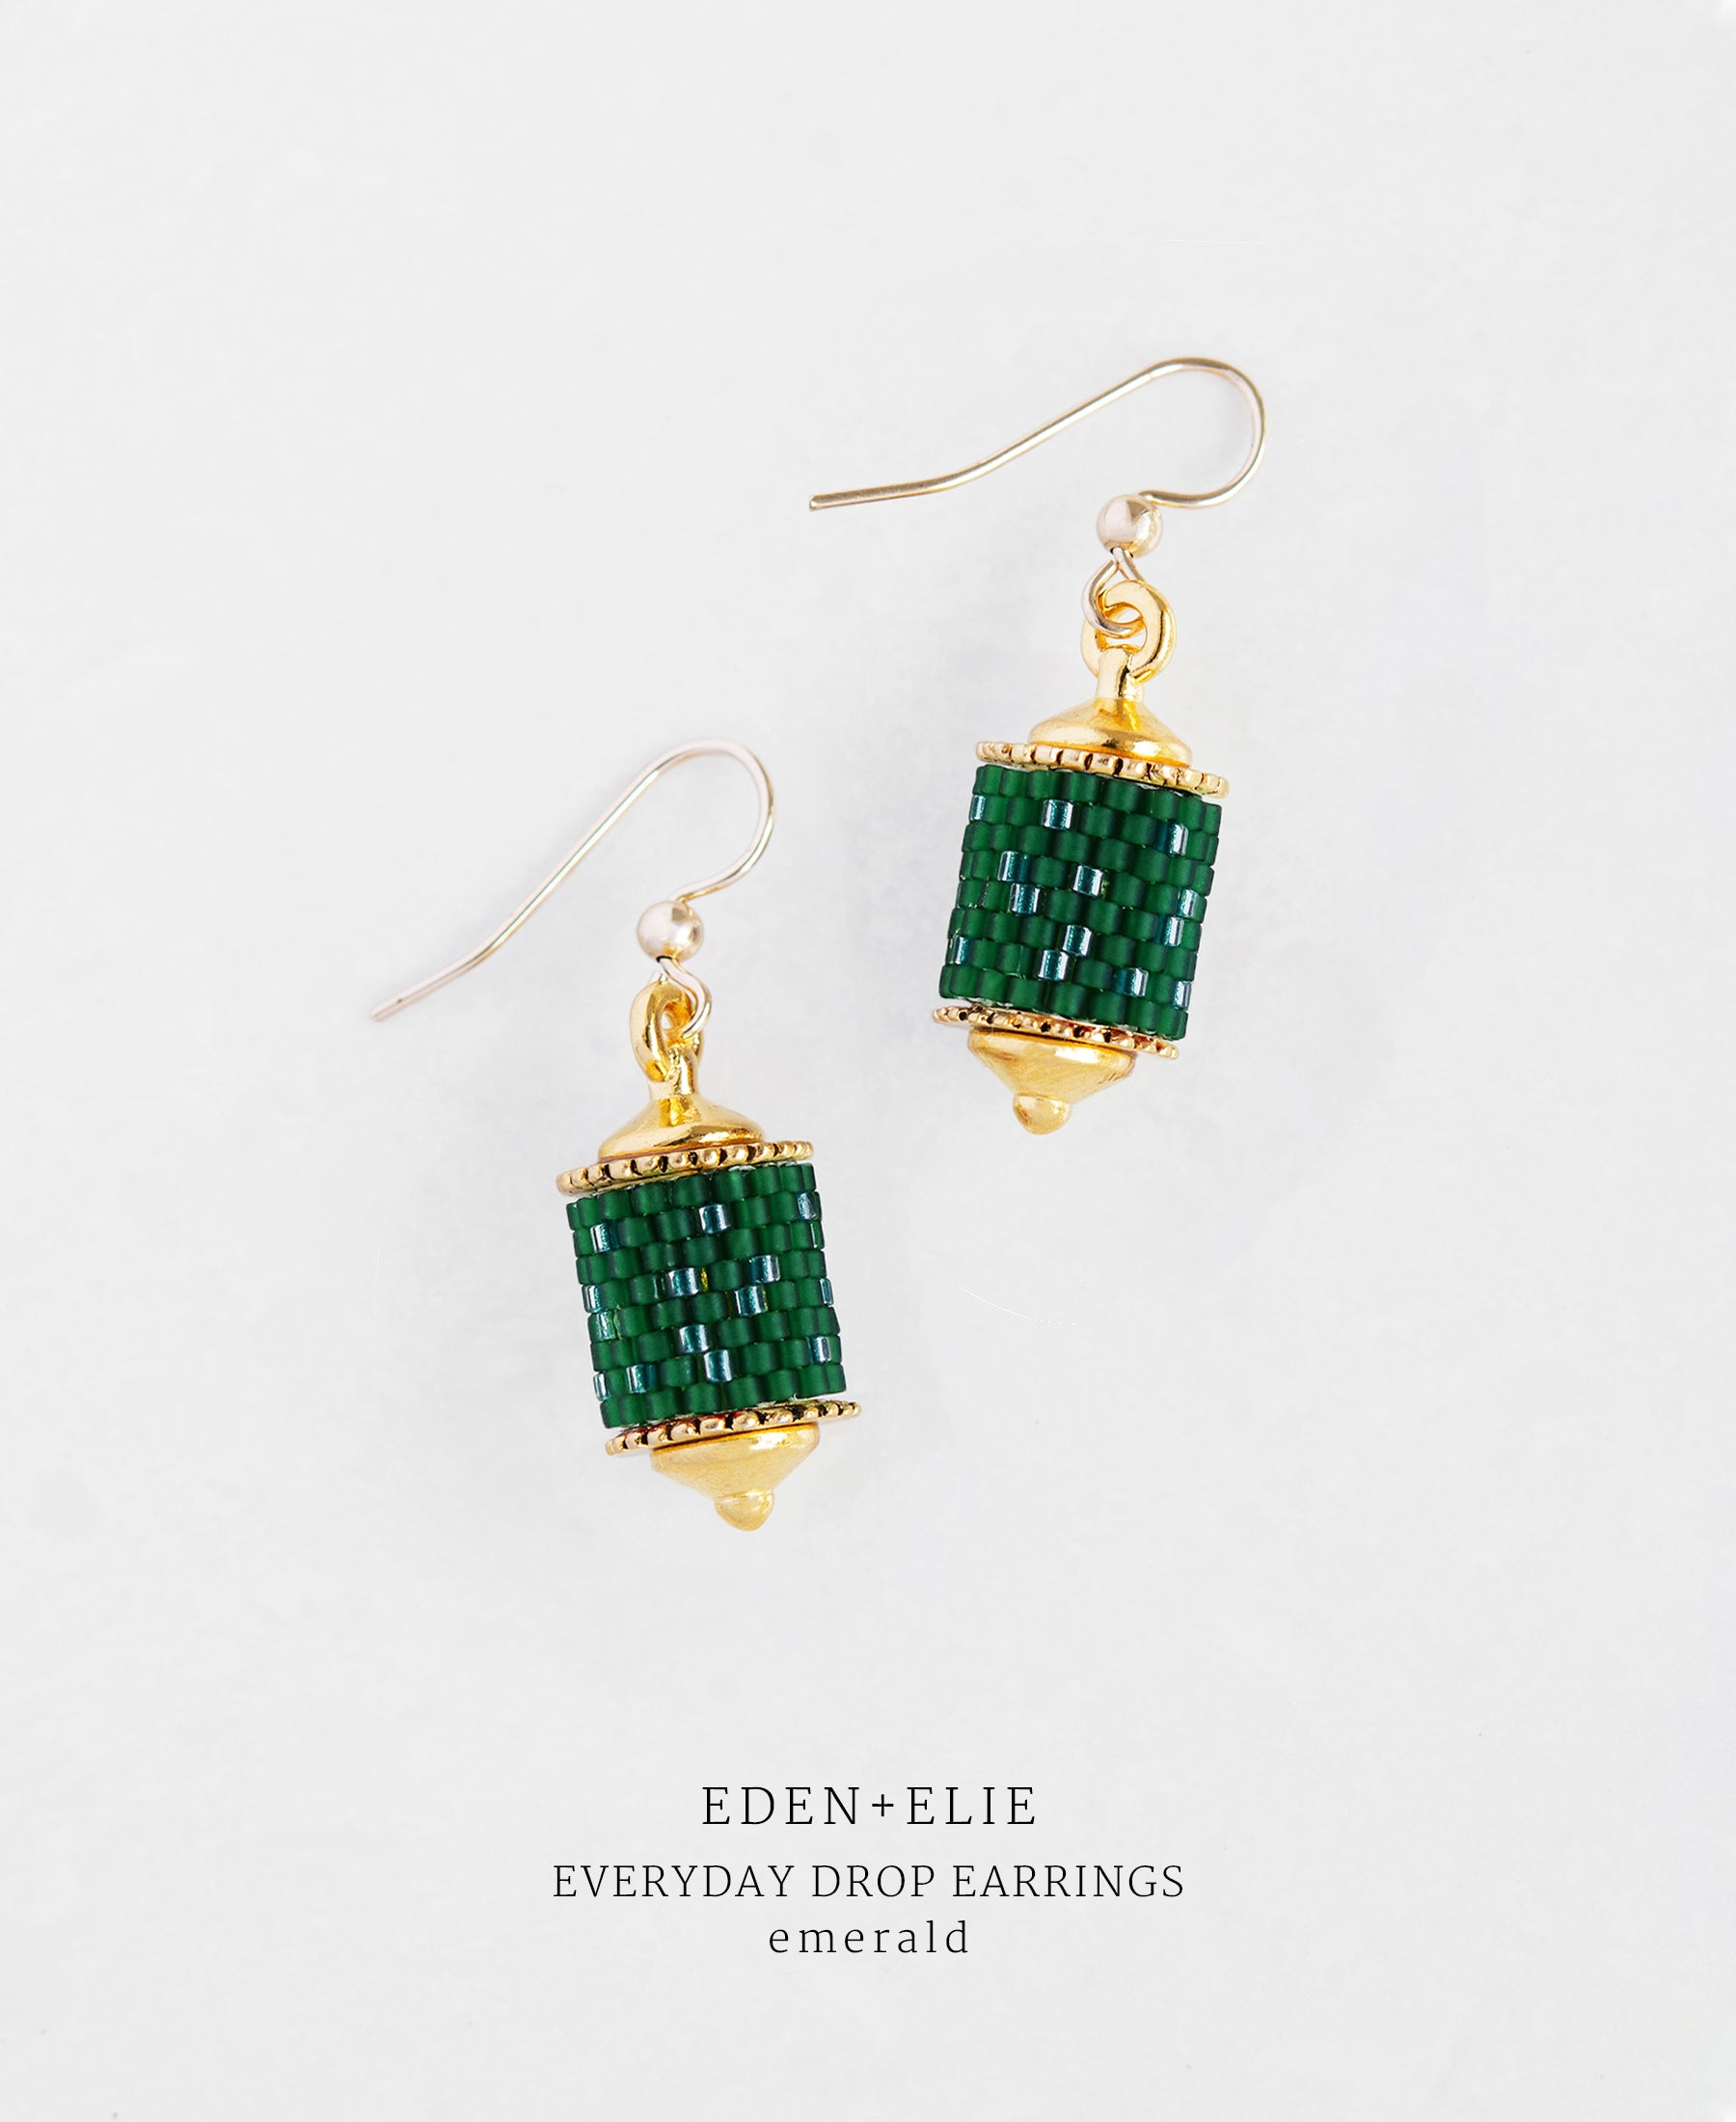 EDEN + ELIE Everyday drop earrings - emerald green